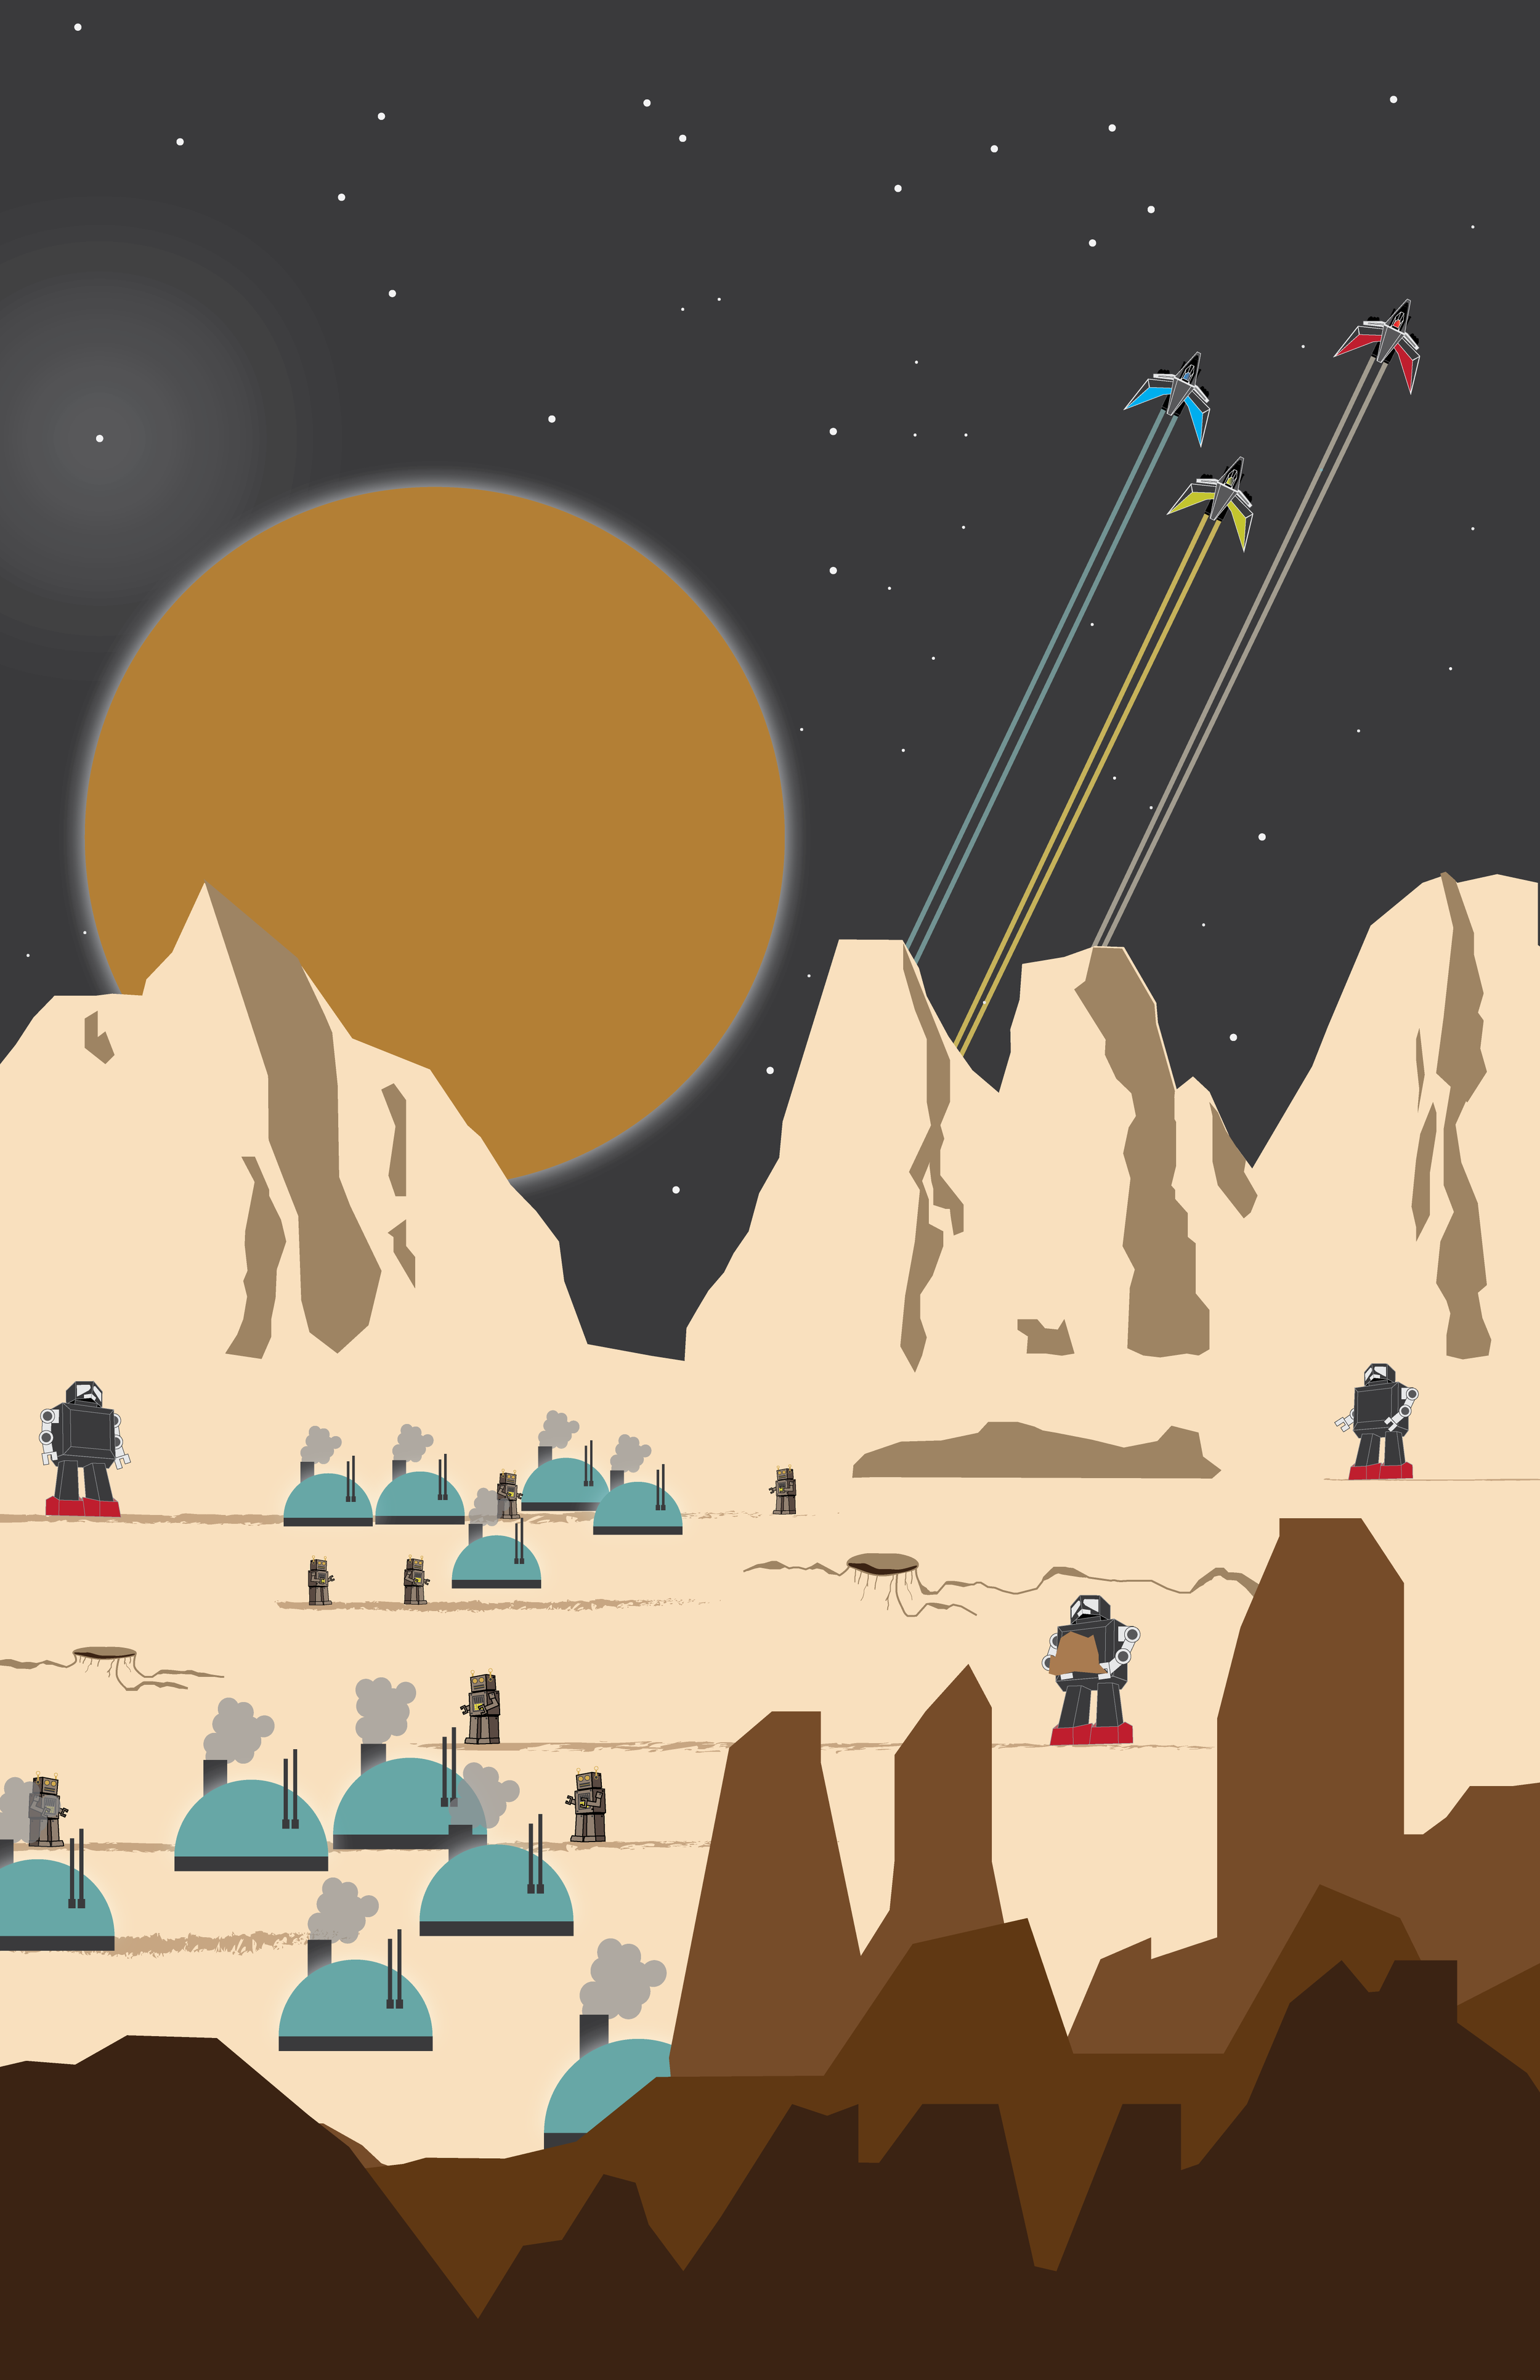 Colonize - Future colonization of planets will not be easy. However, with the help of robots the future of expansion is possible.